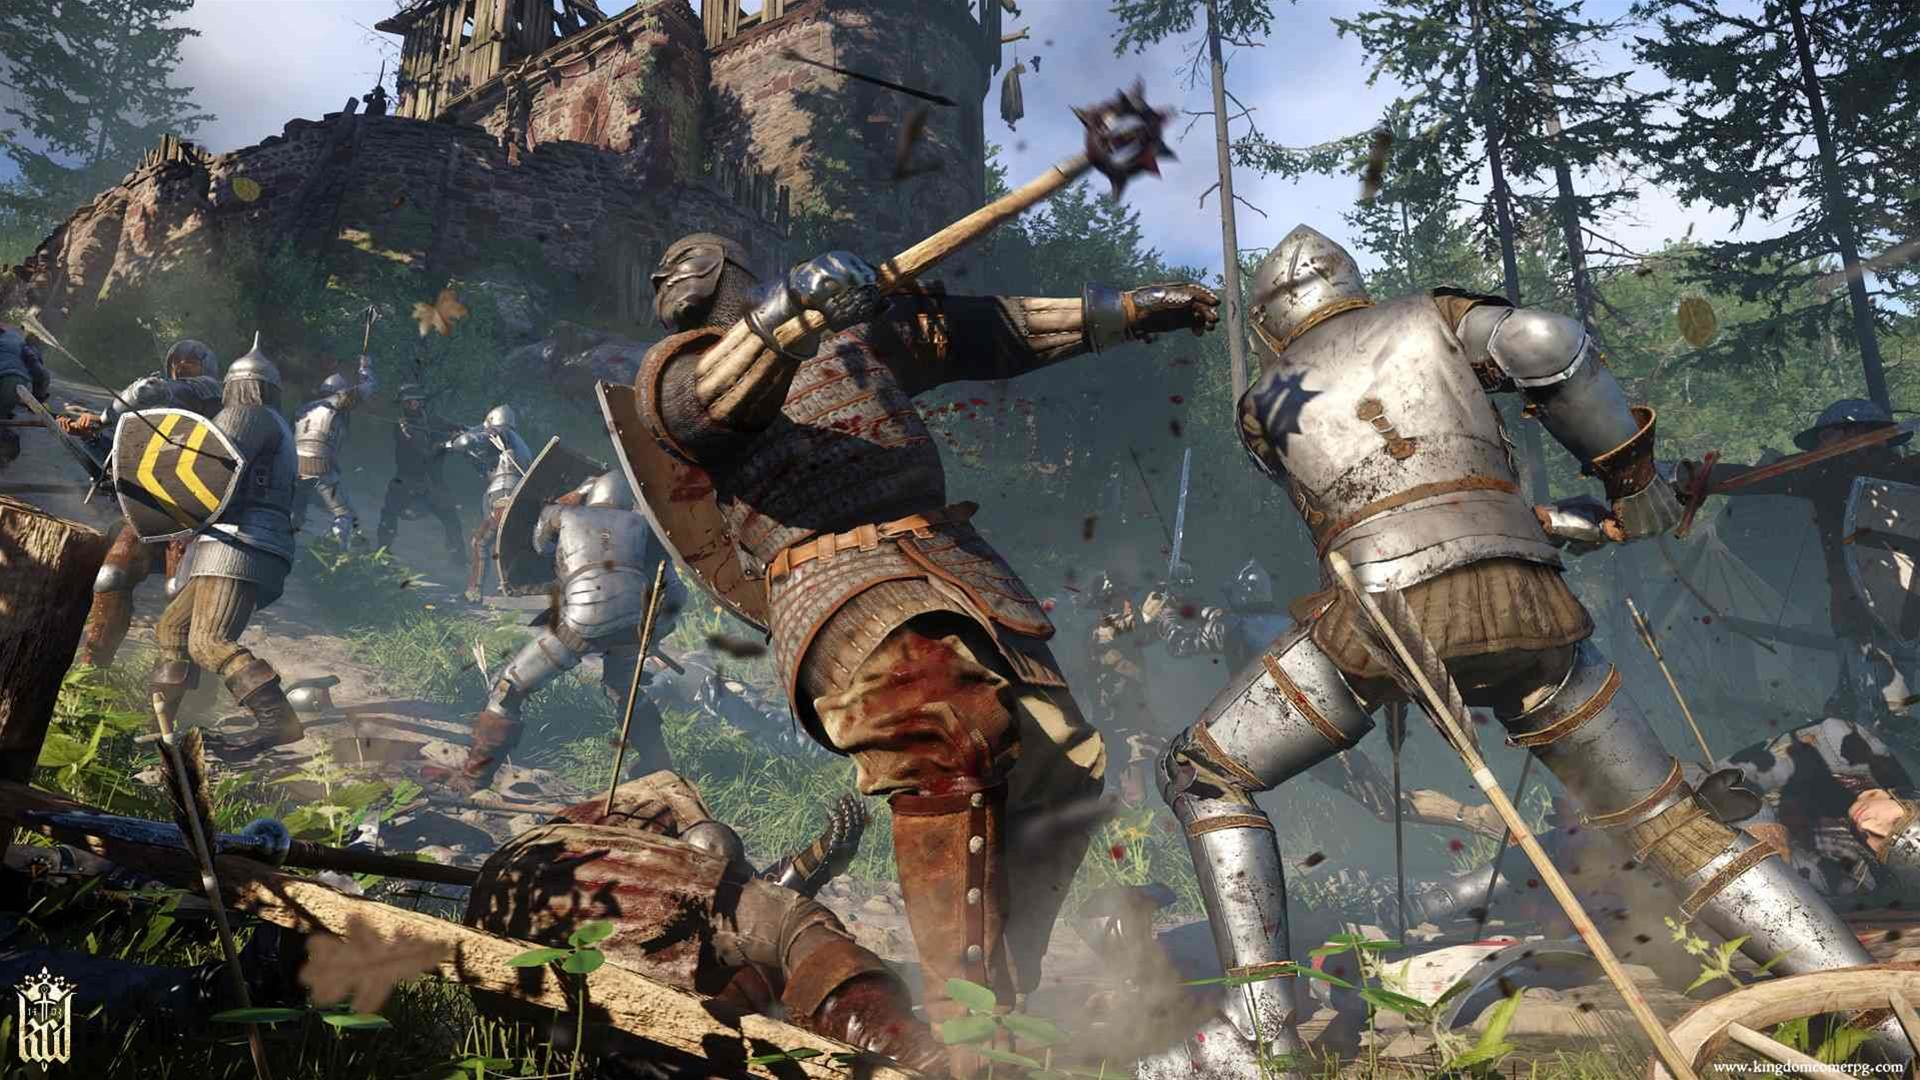 No need to trade your kingdom for these Kingdom Come: Deliverance screens